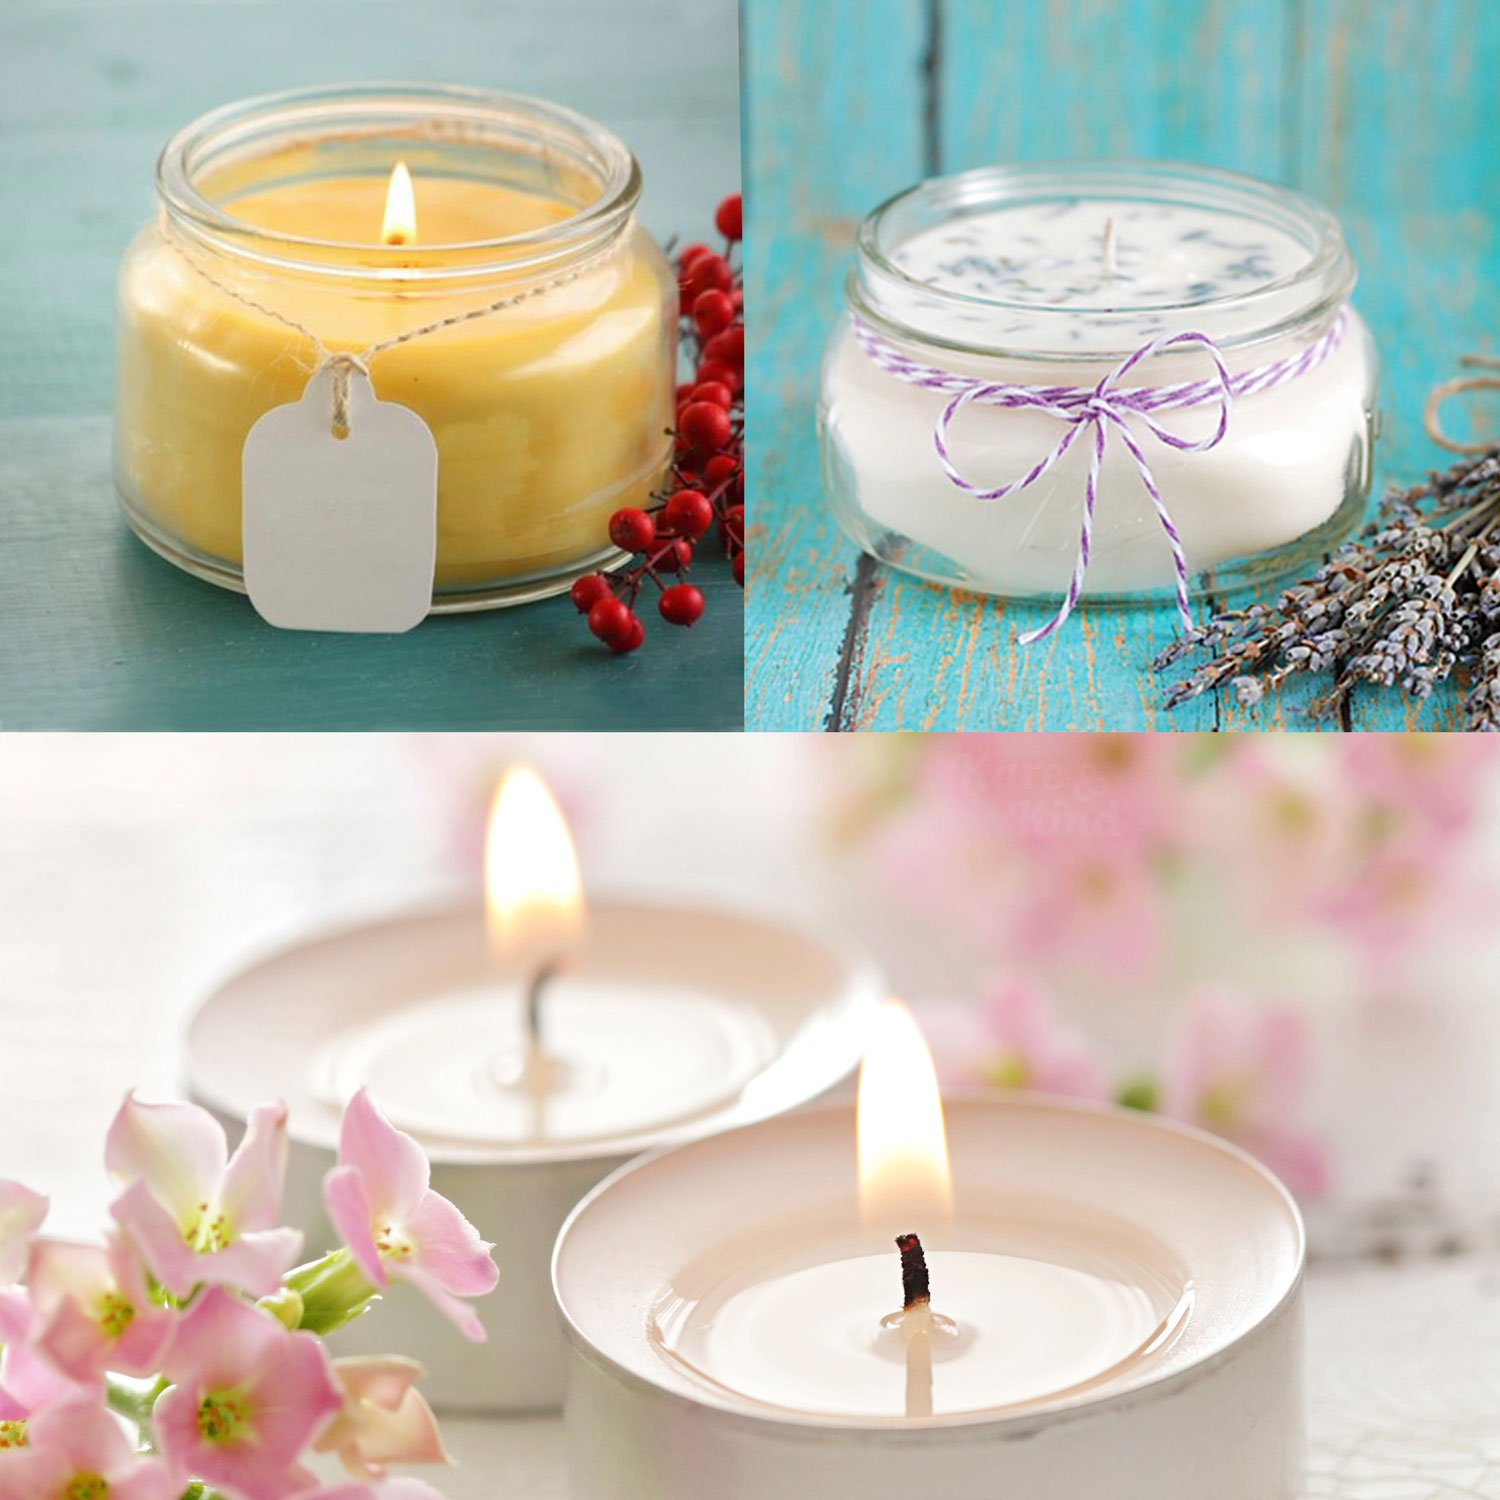 Cotton Threads Woven with Paper 50 Stickers and 3 Wick Holders Wicks Coated With Natural Soy Wax Candle Wick Bundle: 50 Candle Wicks Contains No Lead Easy Positioning Zinc or Other Metals